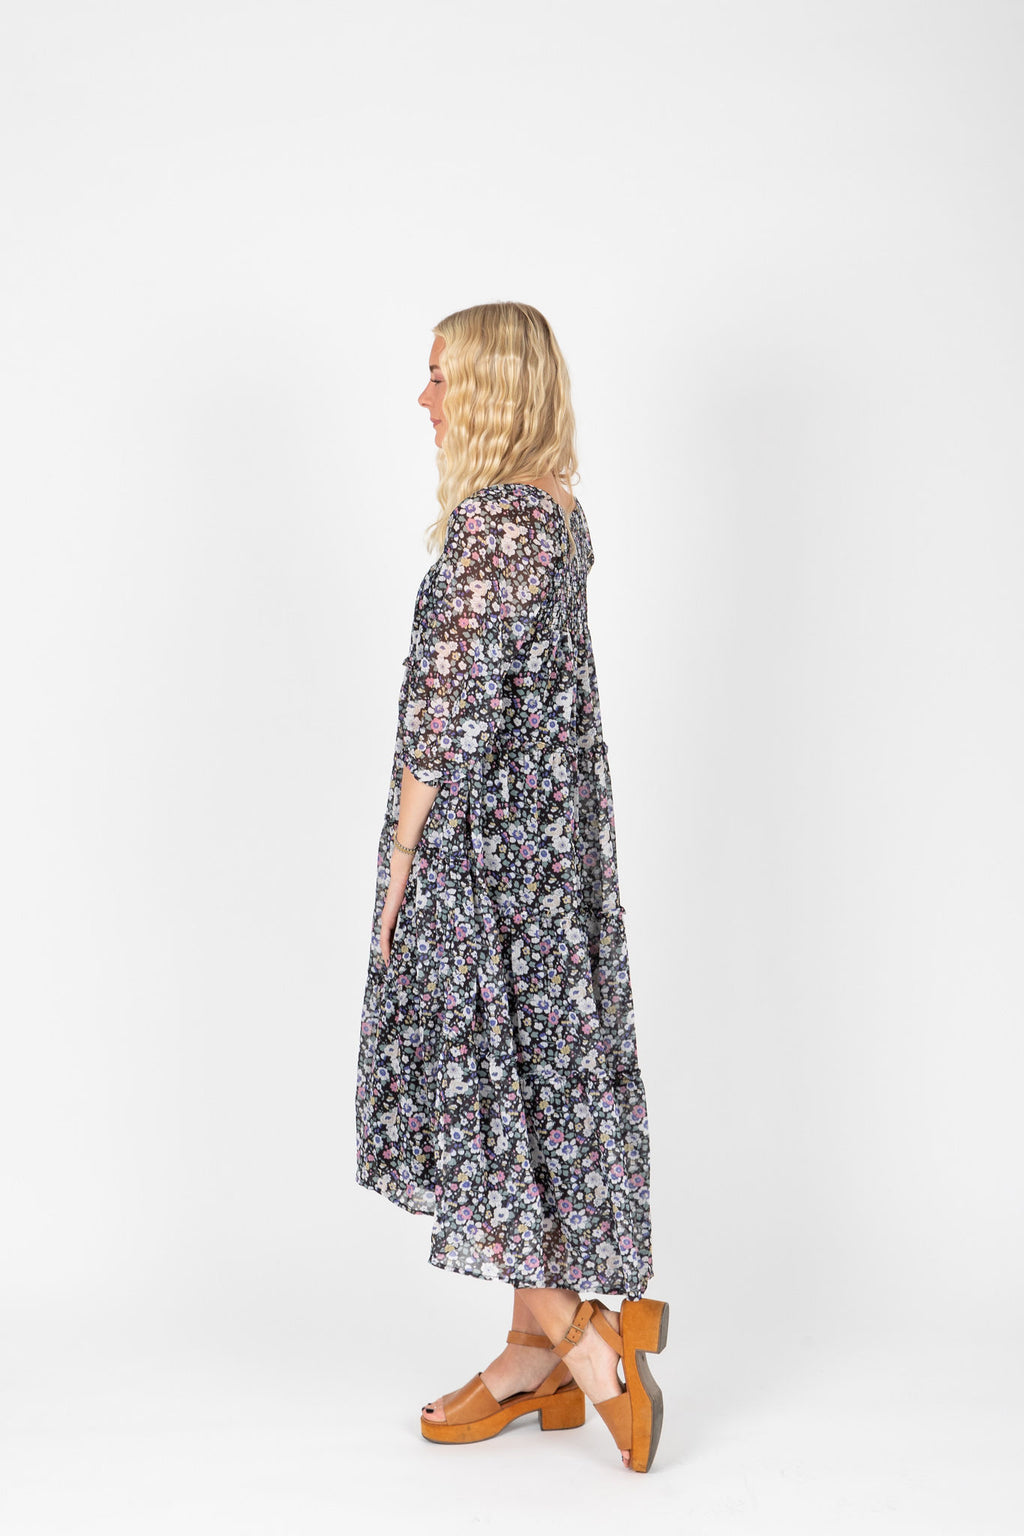 The Kaye Chiffon Floral Dress in Black, studio shoot; side view